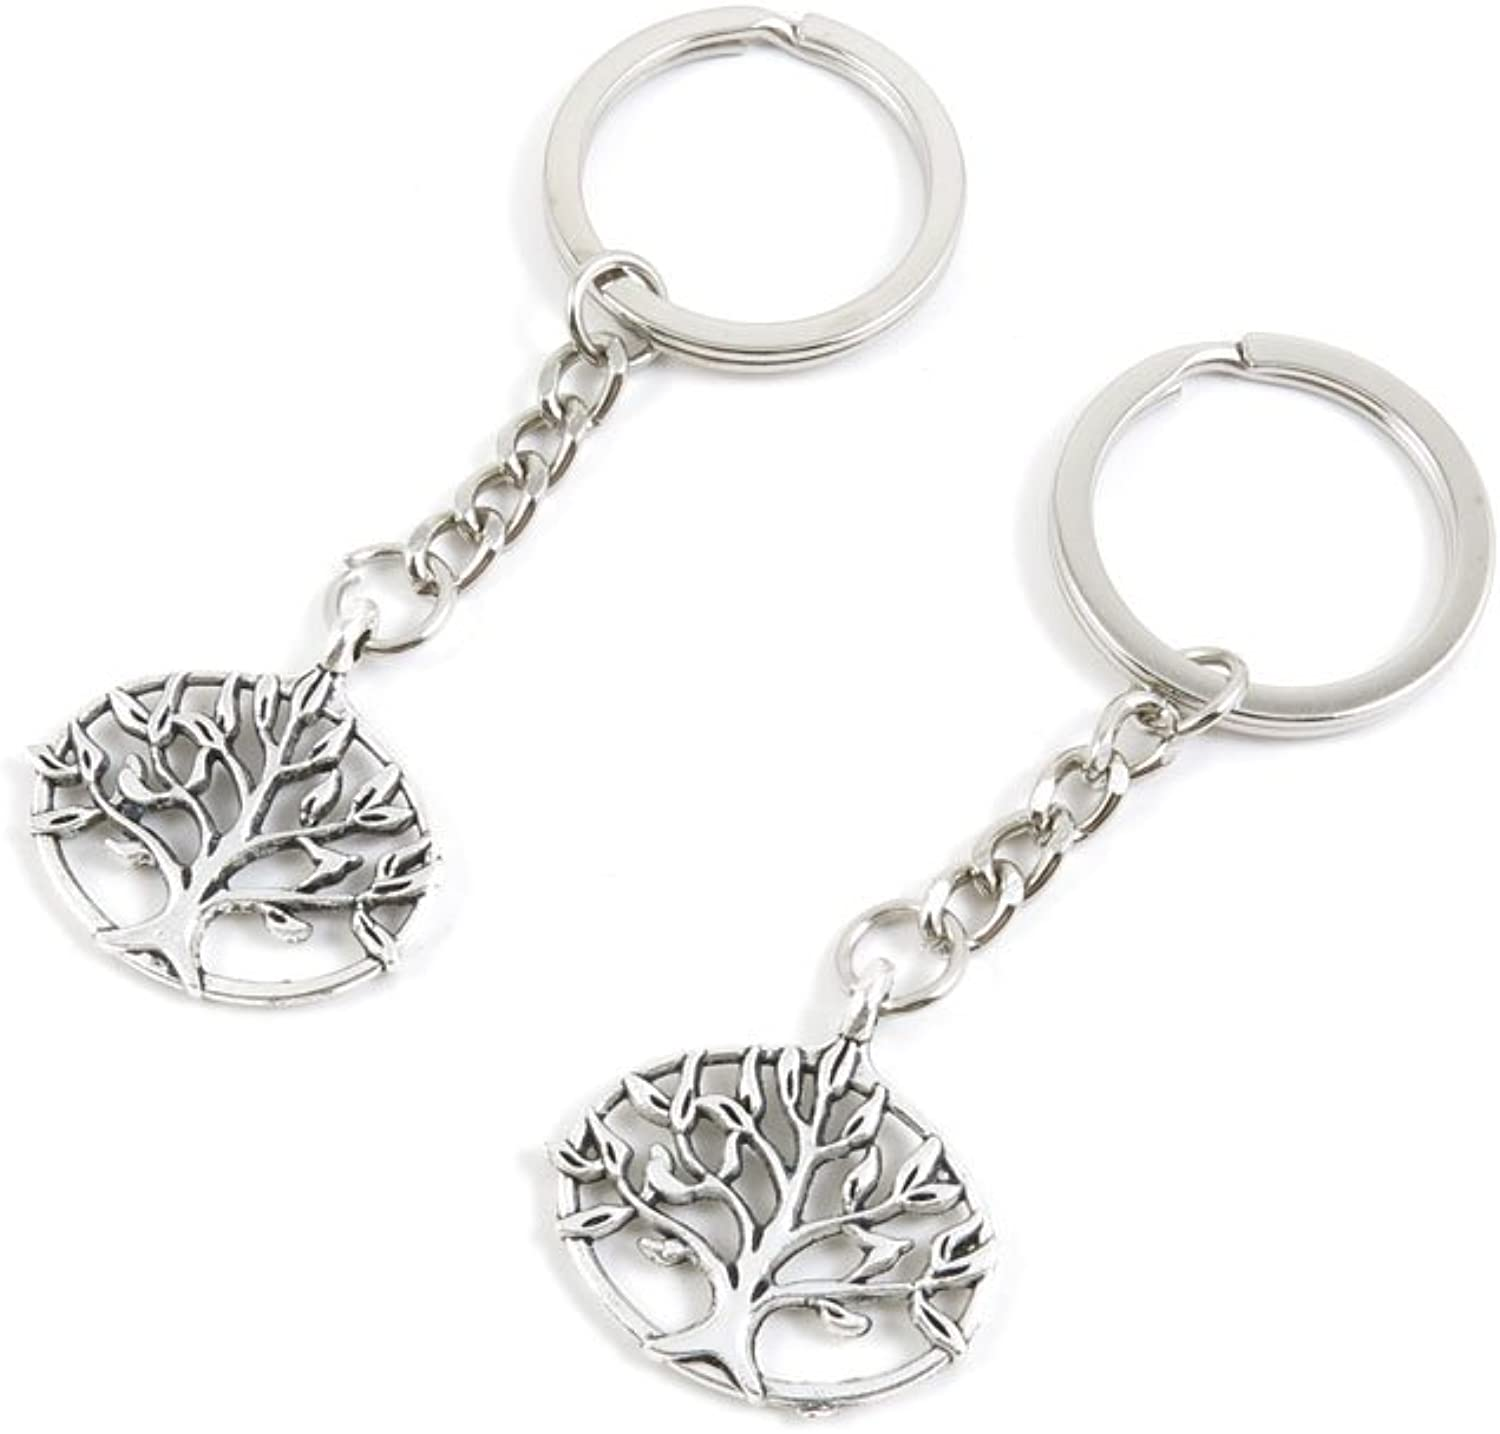 100 Pieces Keychain Keyring Door Car Key Chain Ring Tag Charms Bulk Supply Jewelry Making Clasp Findings H2WJ9I Life String Tree Oak